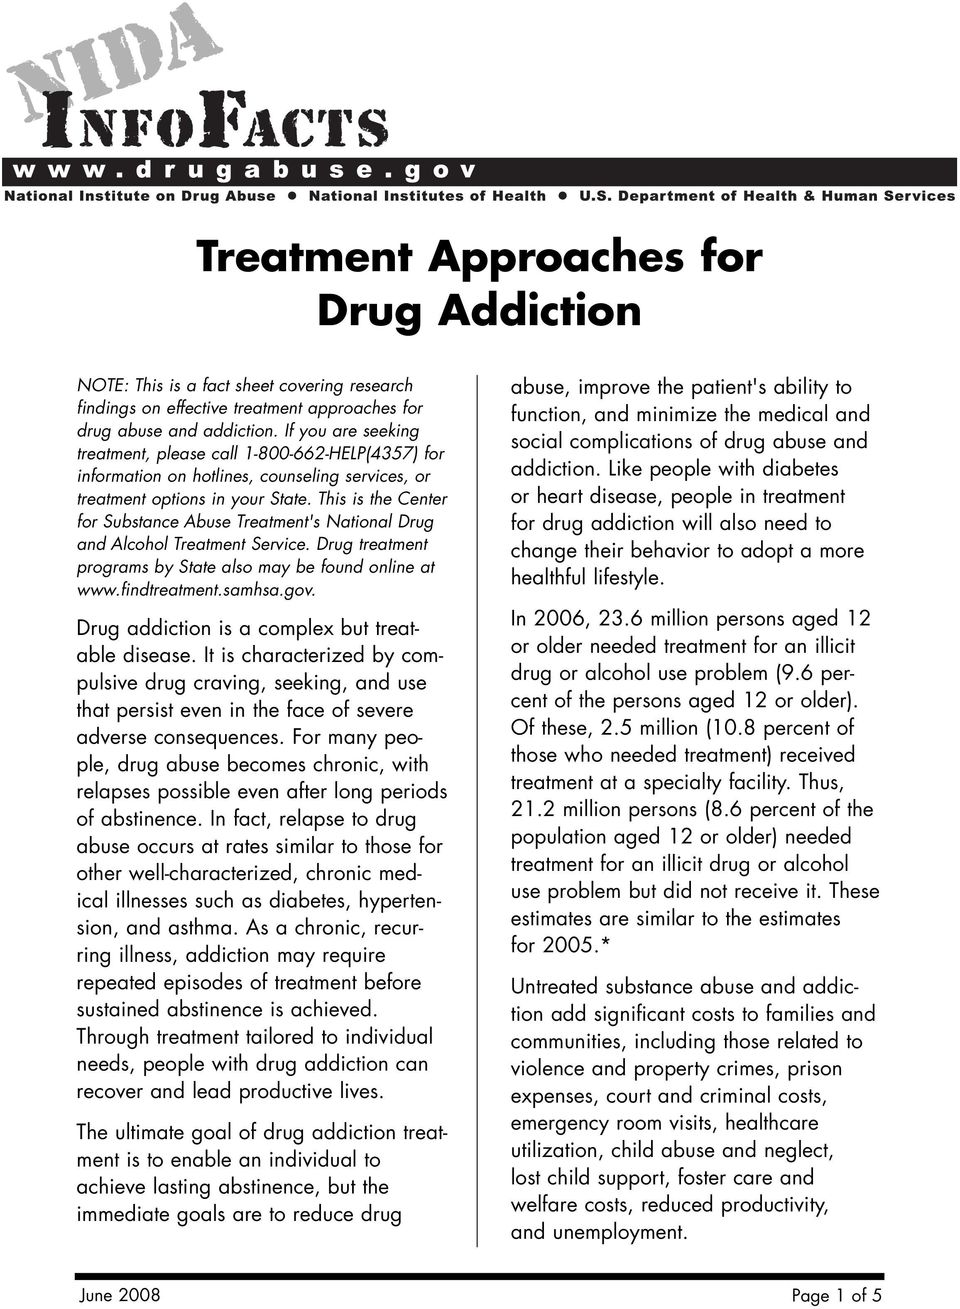 This is the Center for Substance Abuse Treatment's National Drug and Alcohol Treatment Service. Drug treatment programs by State also may be found online at www.findtreatment.samhsa.gov.